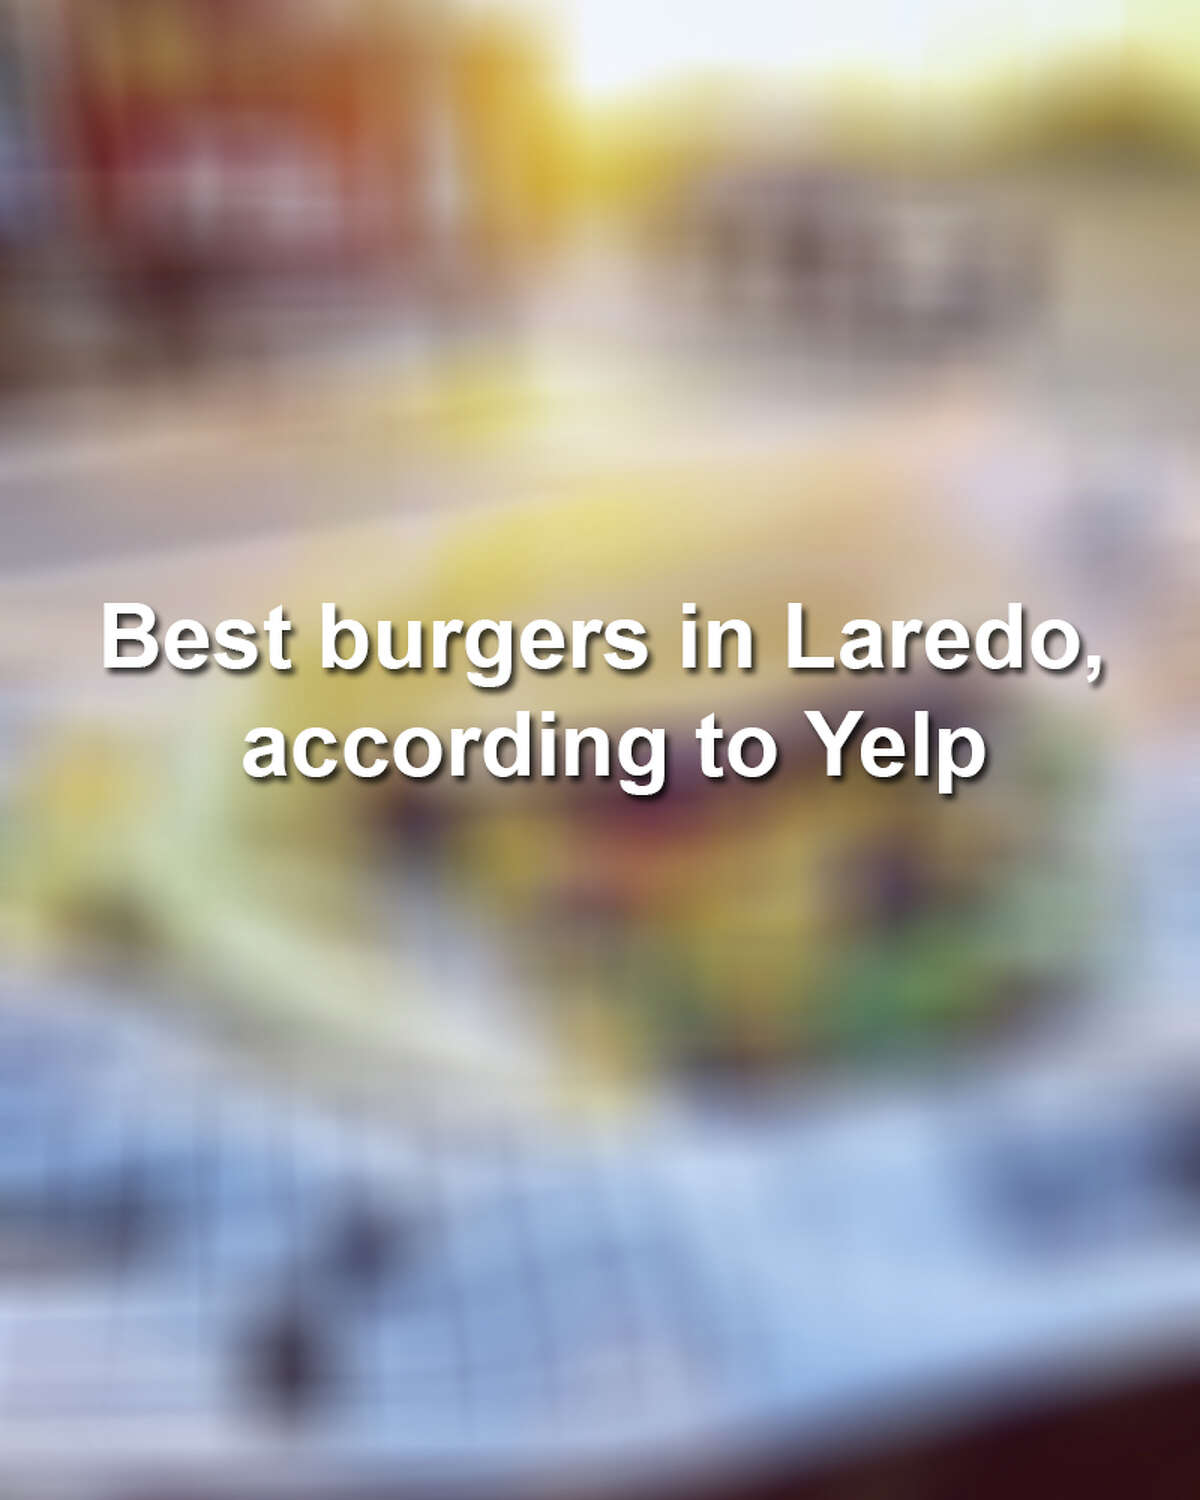 Keep scrolling to see the best burgers in Laredo, according to Yelp reviews.